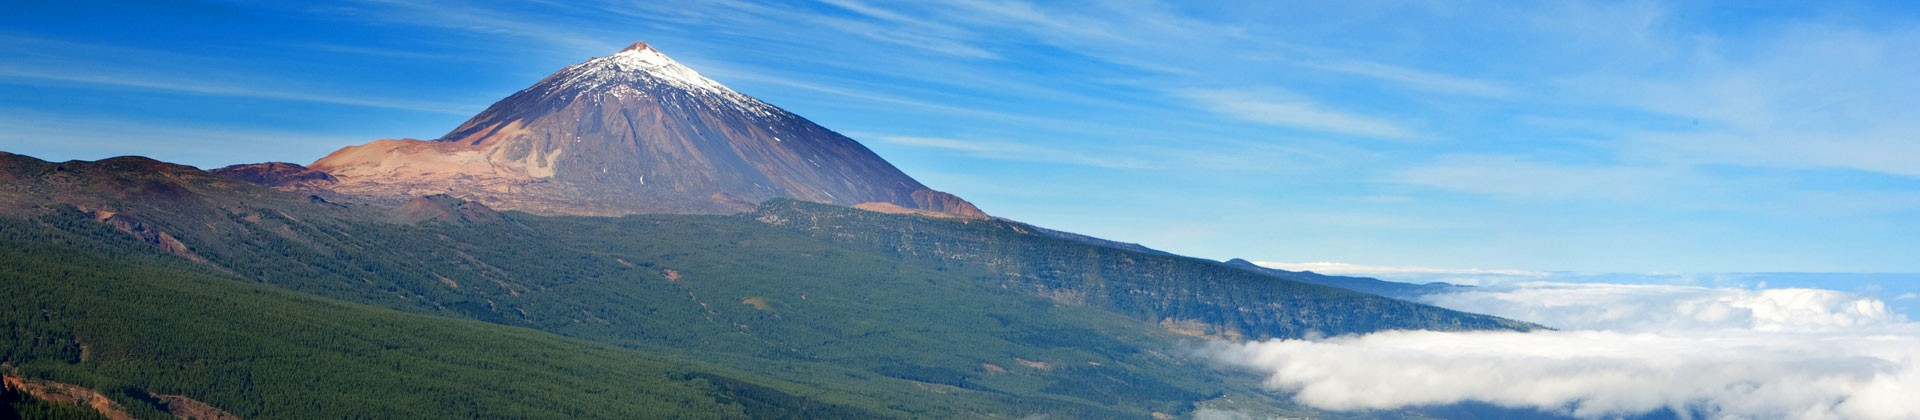 https://www.goodmorningtenerife.com/wp-content/uploads/2014/08/06_slide_teide_GM_Tenerife-1920x420.jpg